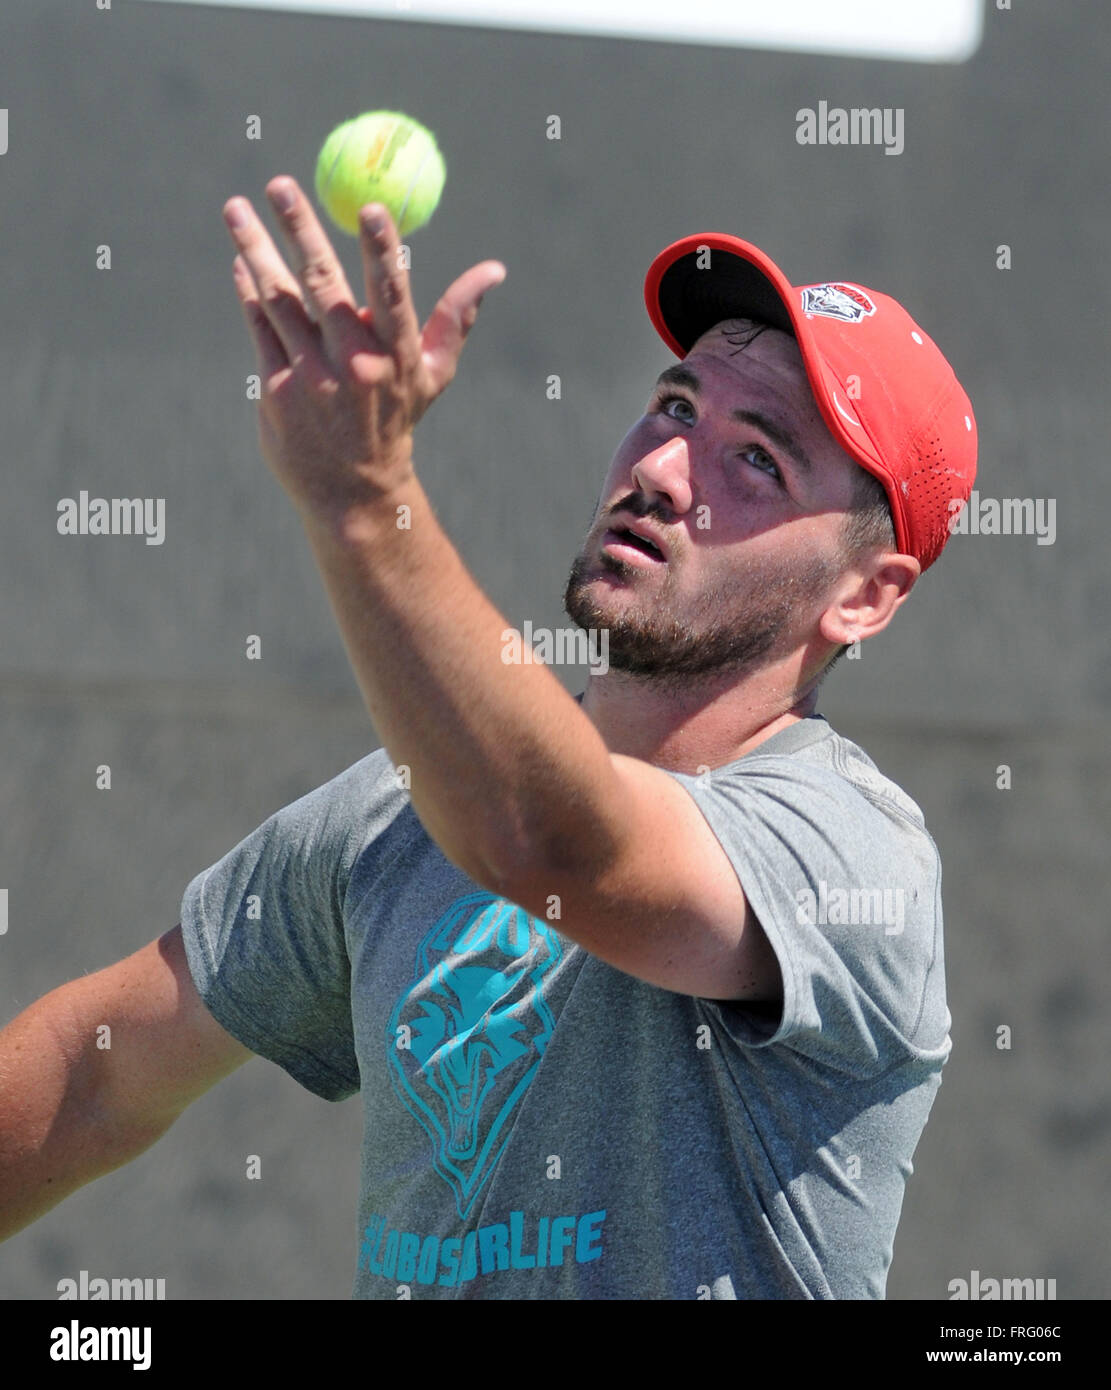 Albuquerque, NM, USA. 22nd Mar, 2016. UNM's Bart Van Leijsen makes the toss for the serve during practice Tuesday - Stock Image